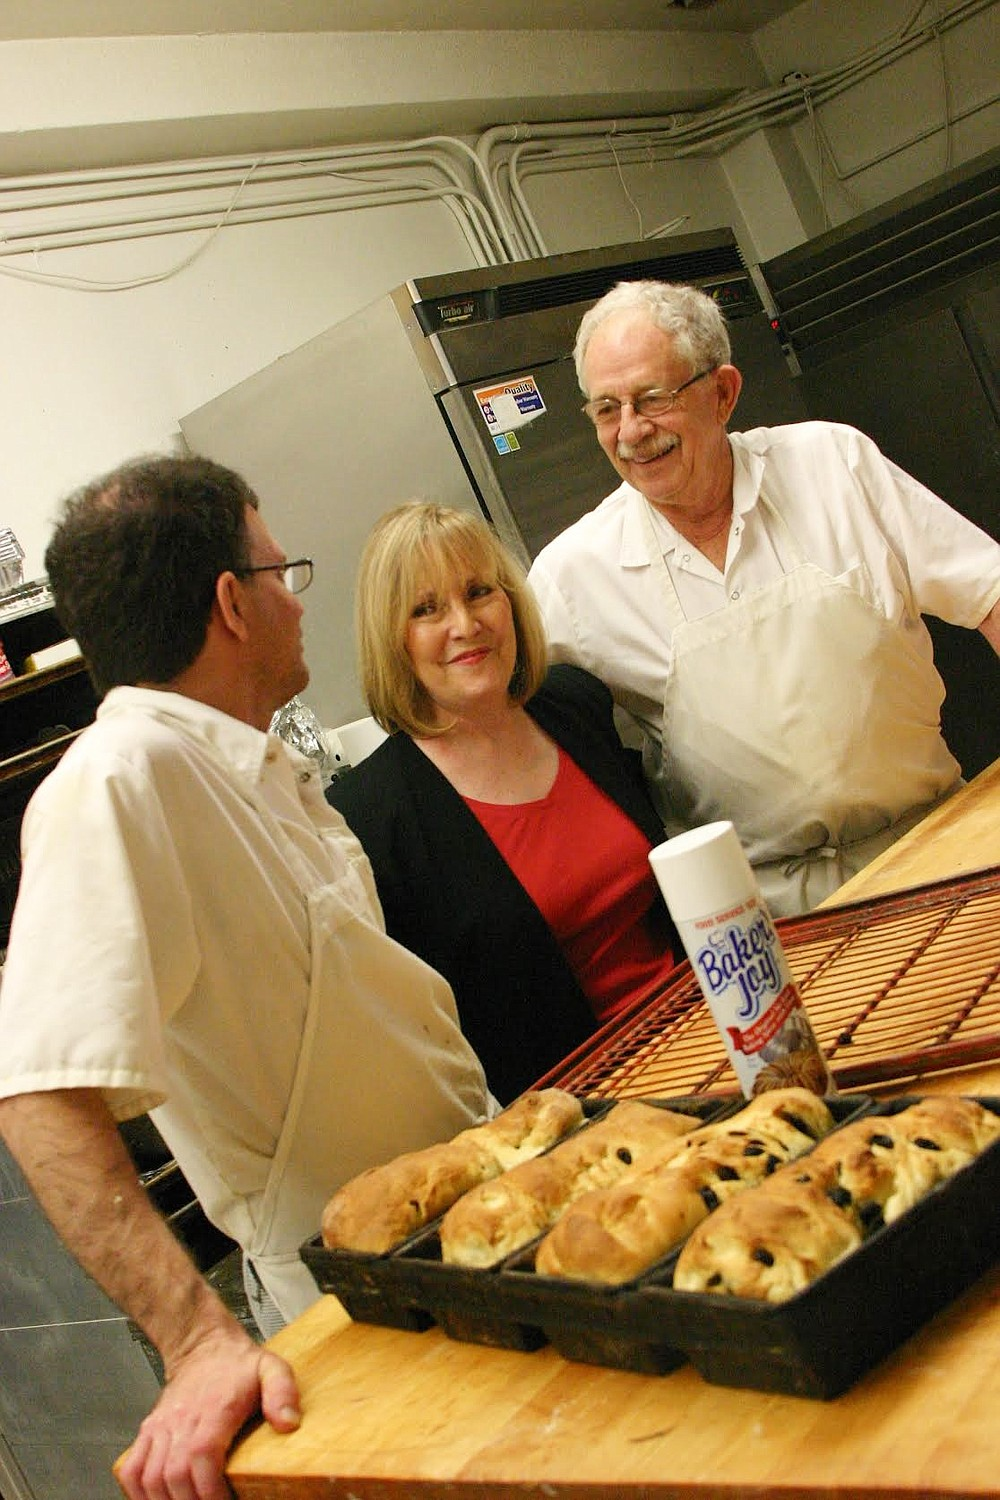 From left, youngest son Paul Klappenbach is in the kitchen with regular customer Marilyn Book and master baker Norman August Klappenbach. (Special to The Commercial/Deborah Horn)